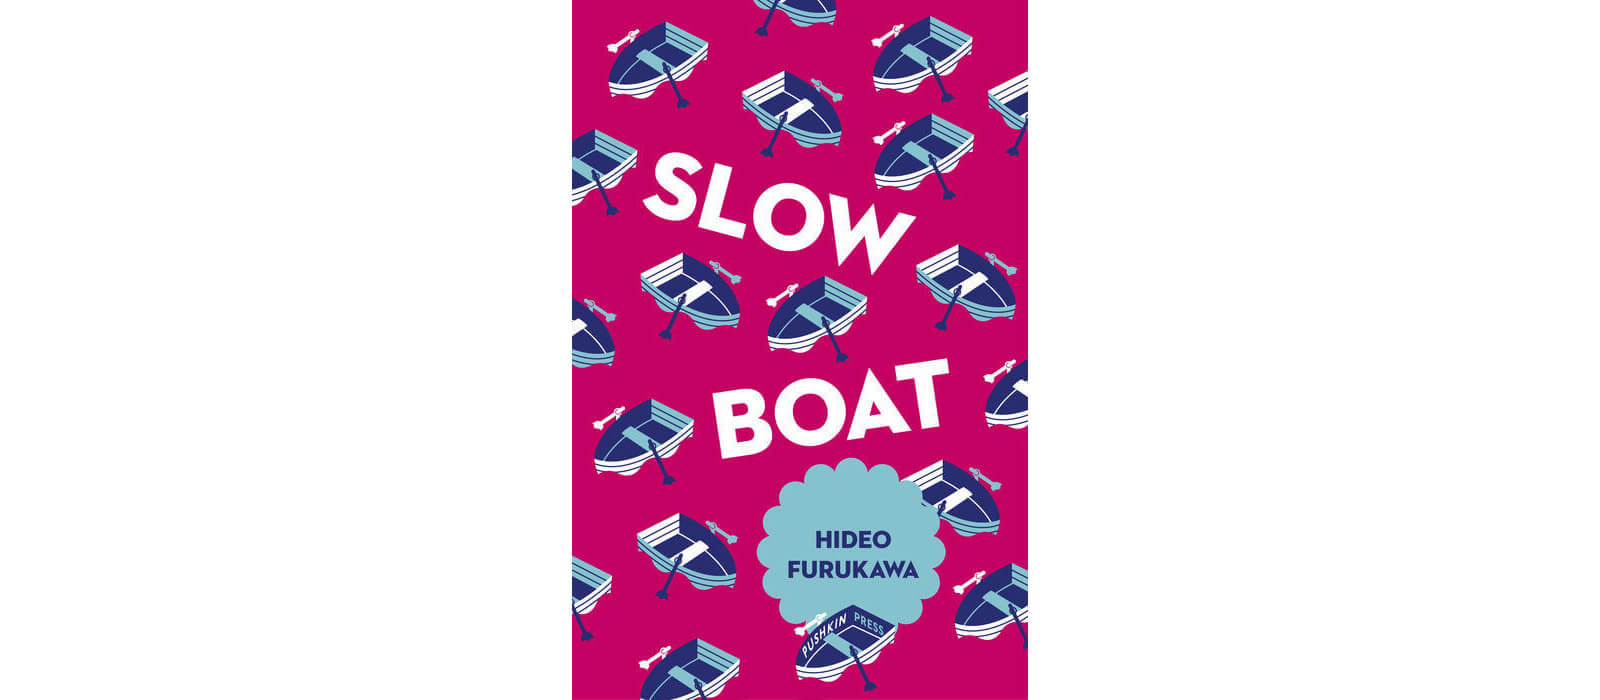 June 2017 Manga Releases - Slow Boat